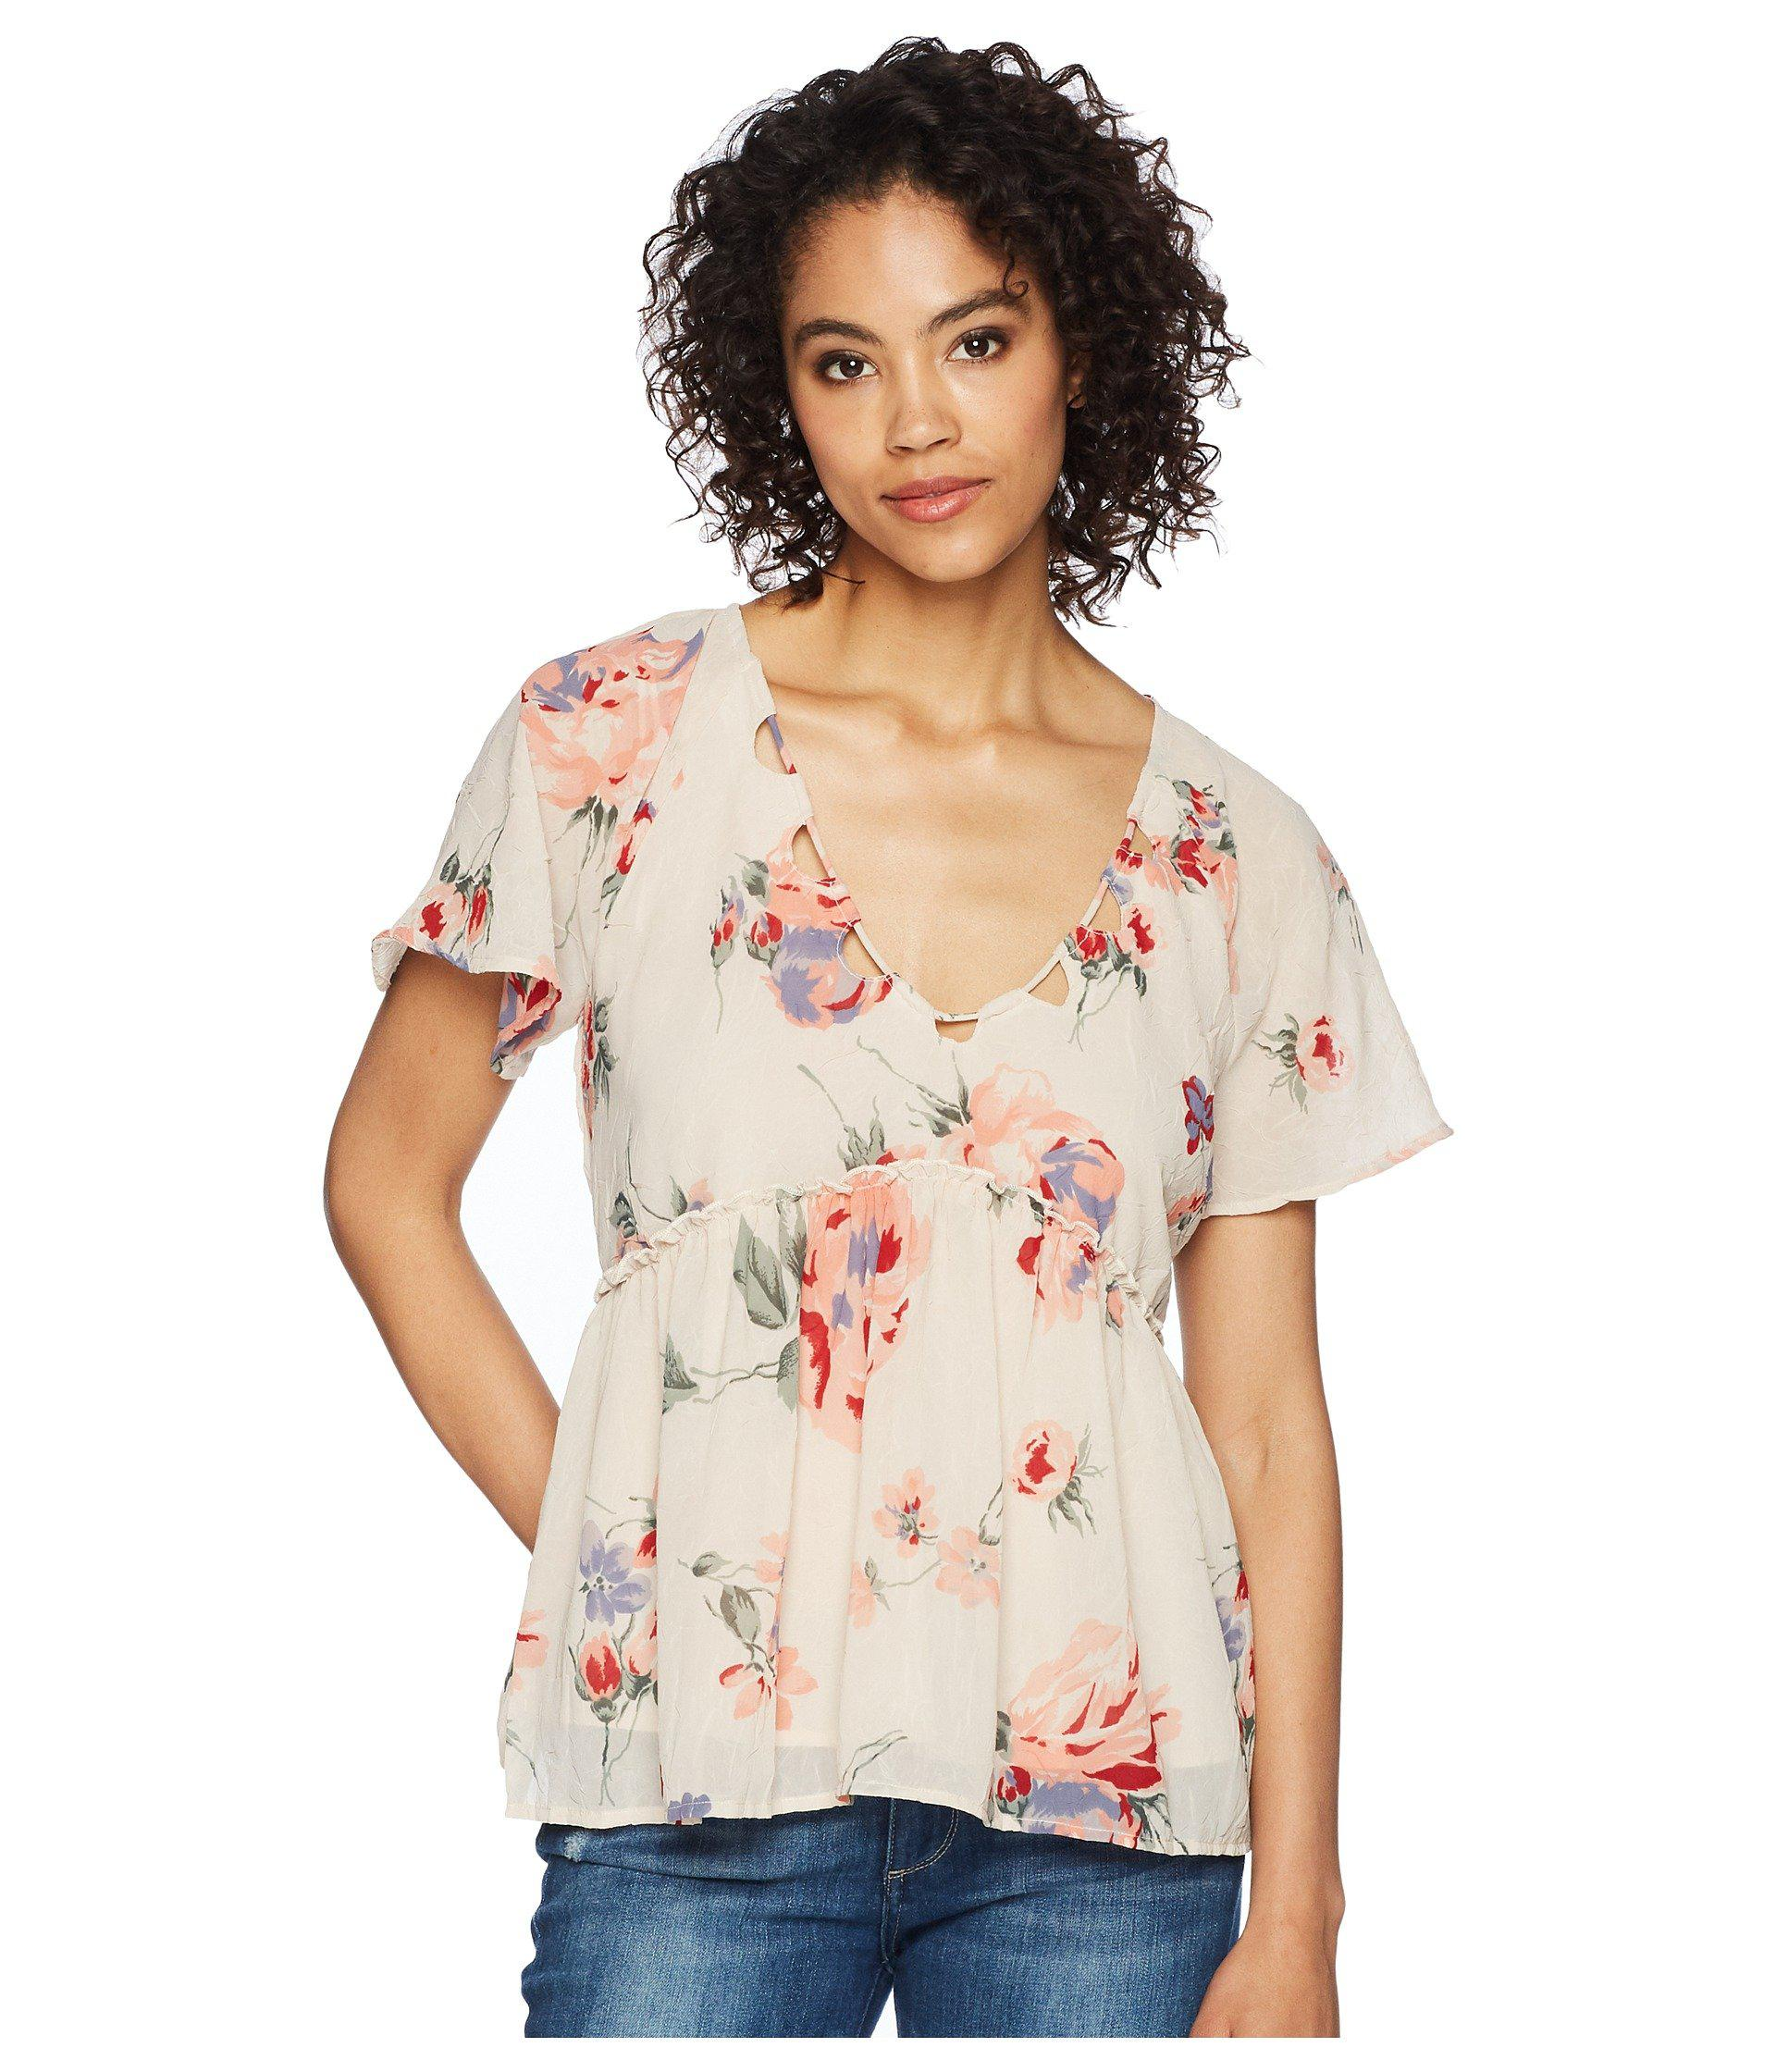 b35e4765bb8b32 Lyst - Lucky Brand Floral Flutter Top in Pink - Save 35%